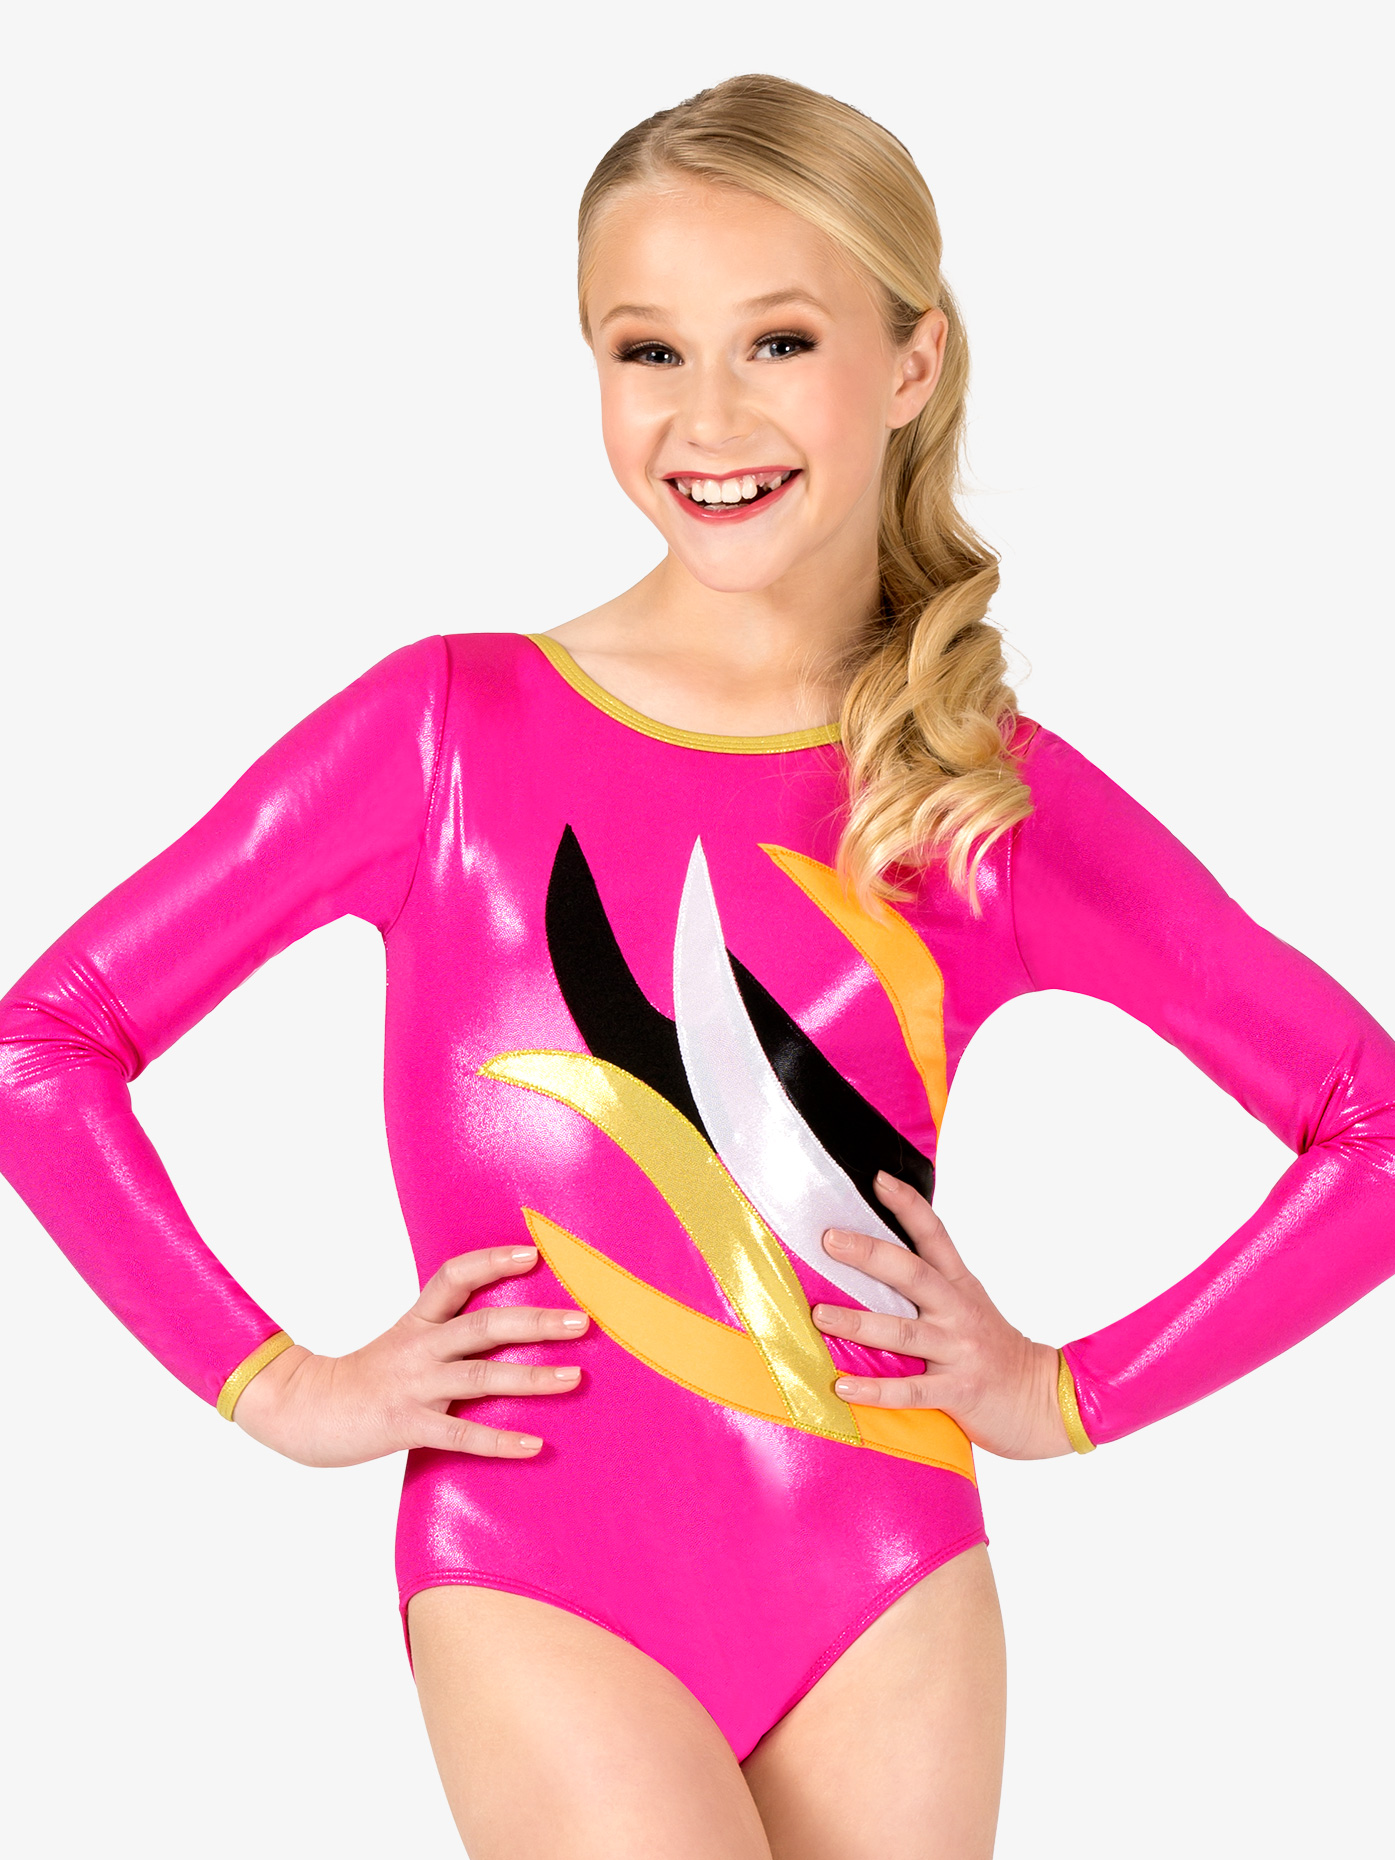 Perfect Balance Girls Gymnastics Contrast Spliced Long Sleeve Leotard G675C